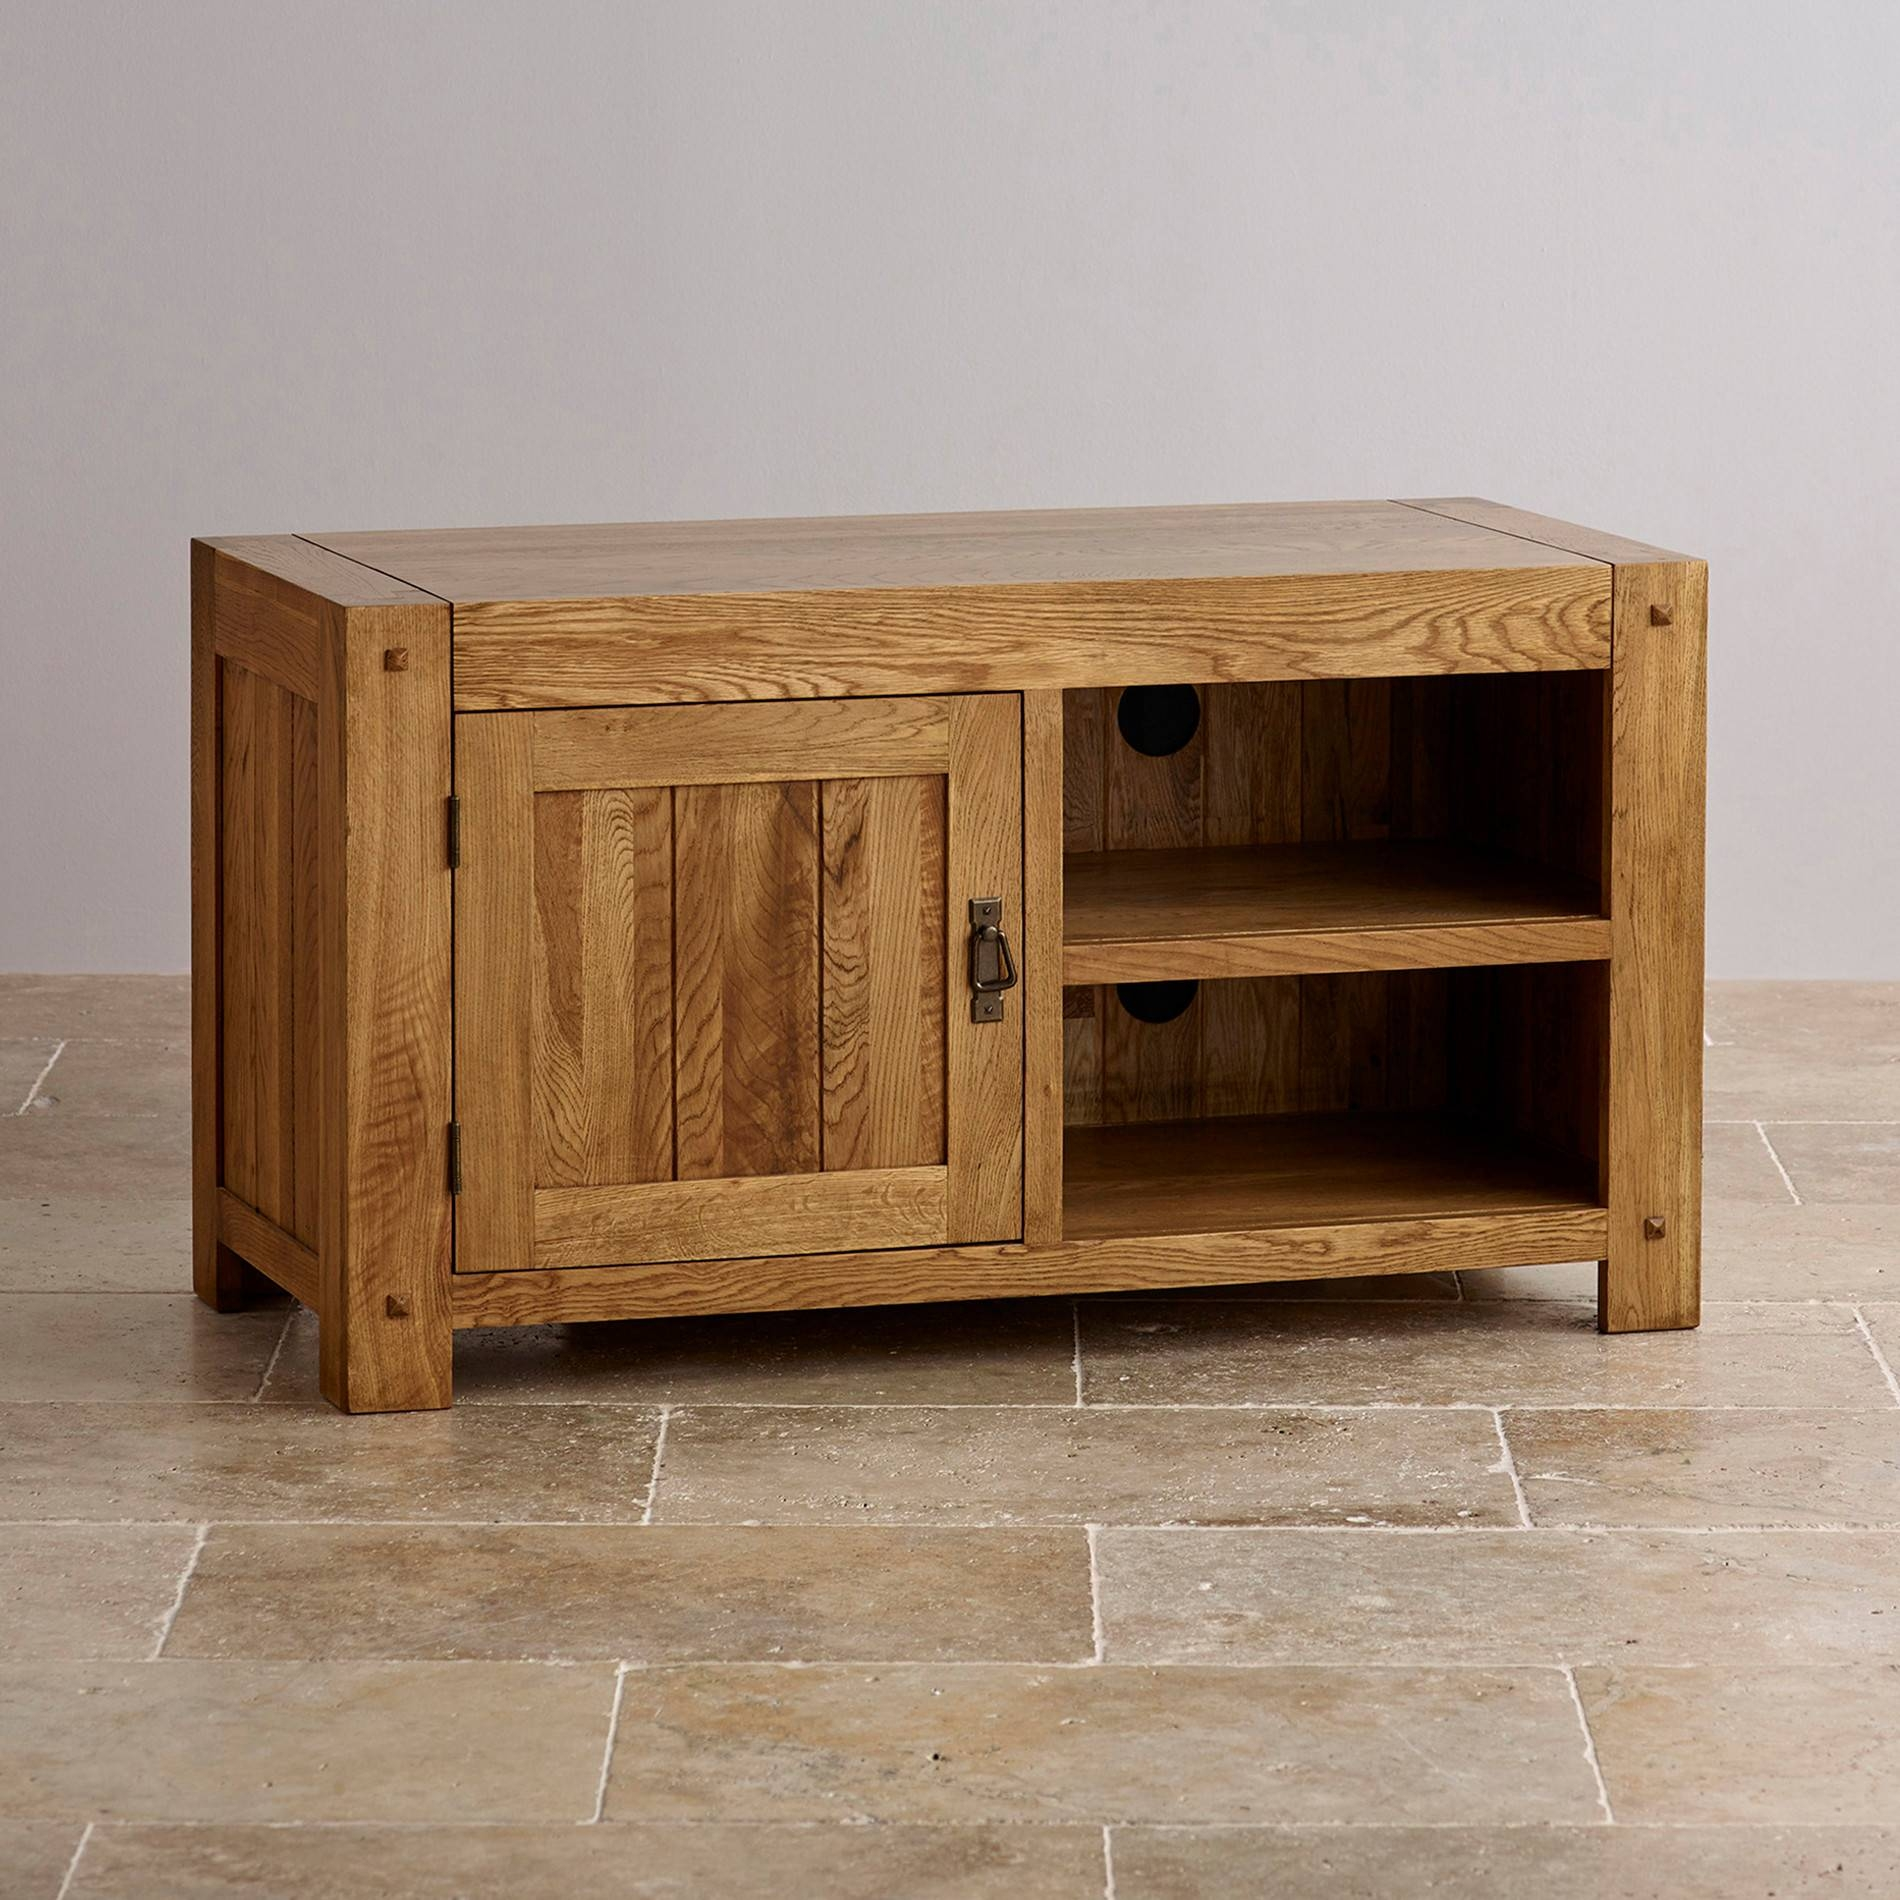 Quercus Tv Cabinet In Rustic Solid Oak | Oak Furniture Land with regard to Oak Tv Cabinets With Doors (Image 9 of 15)